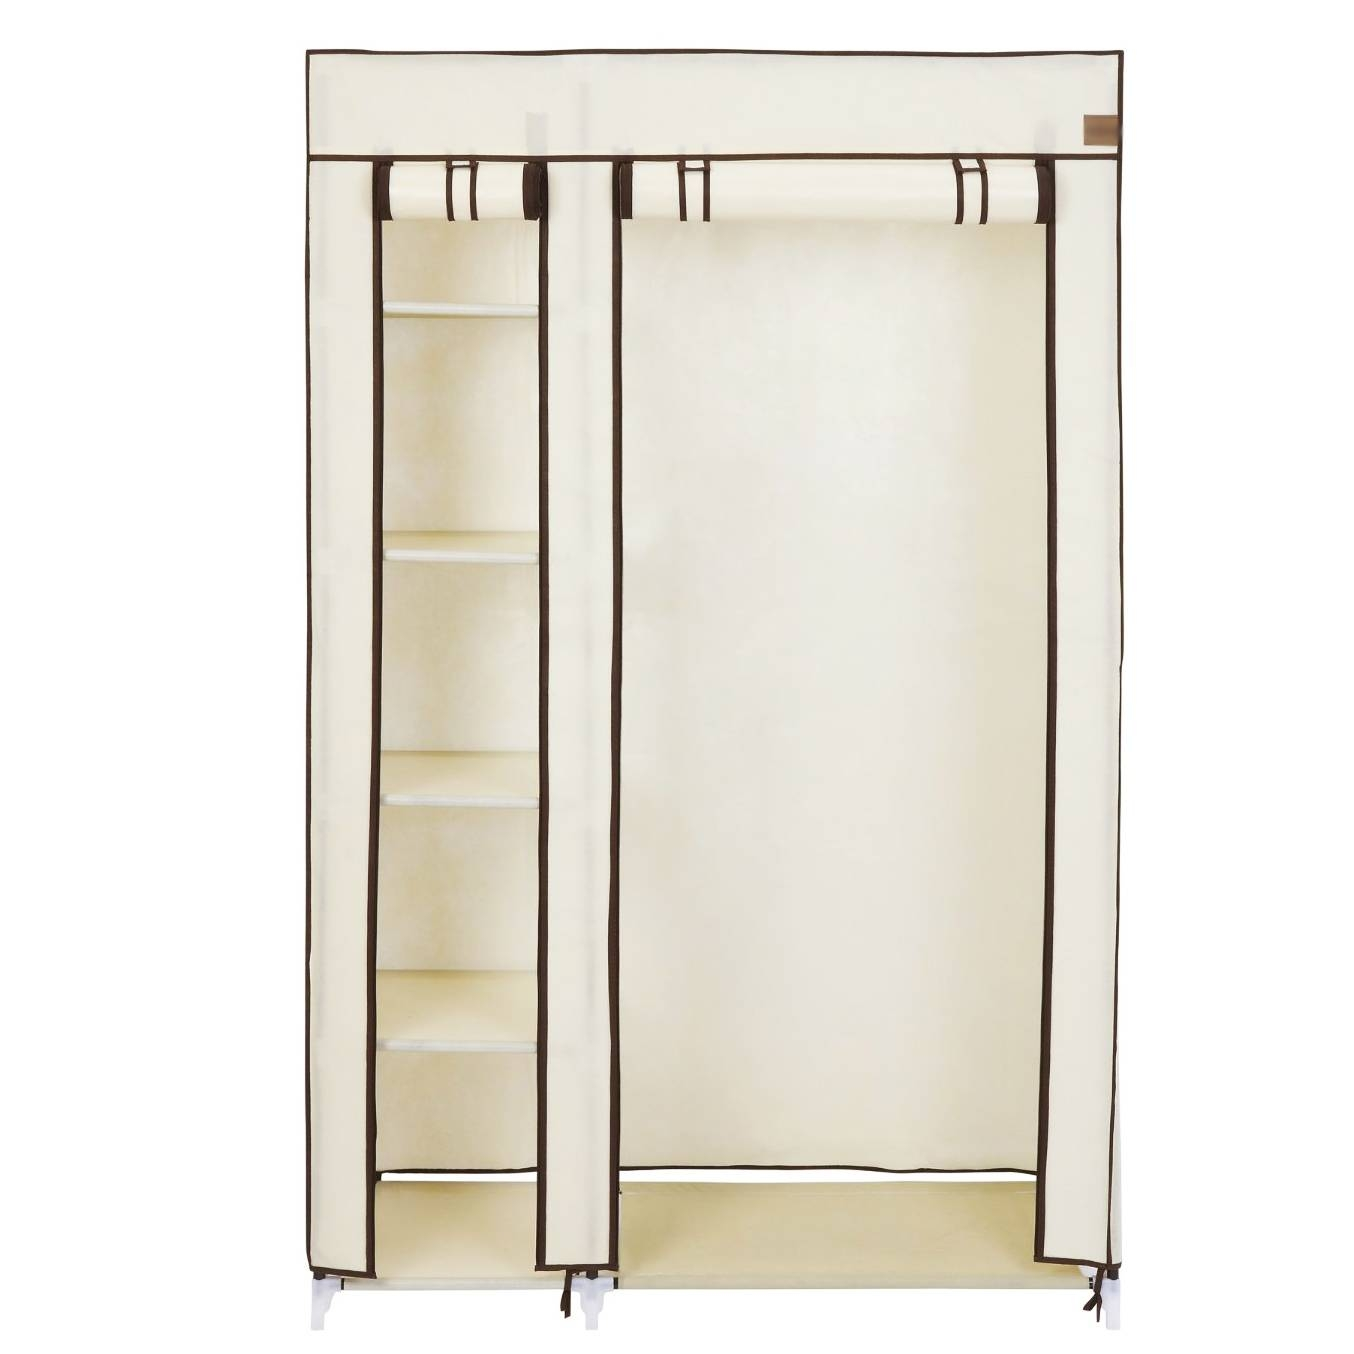 Double Cream Canvas Wardrobe Clothes Rail Hanging Storage Closet pertaining to Double Canvas Wardrobes Rail Clothes Storage (Image 10 of 30)